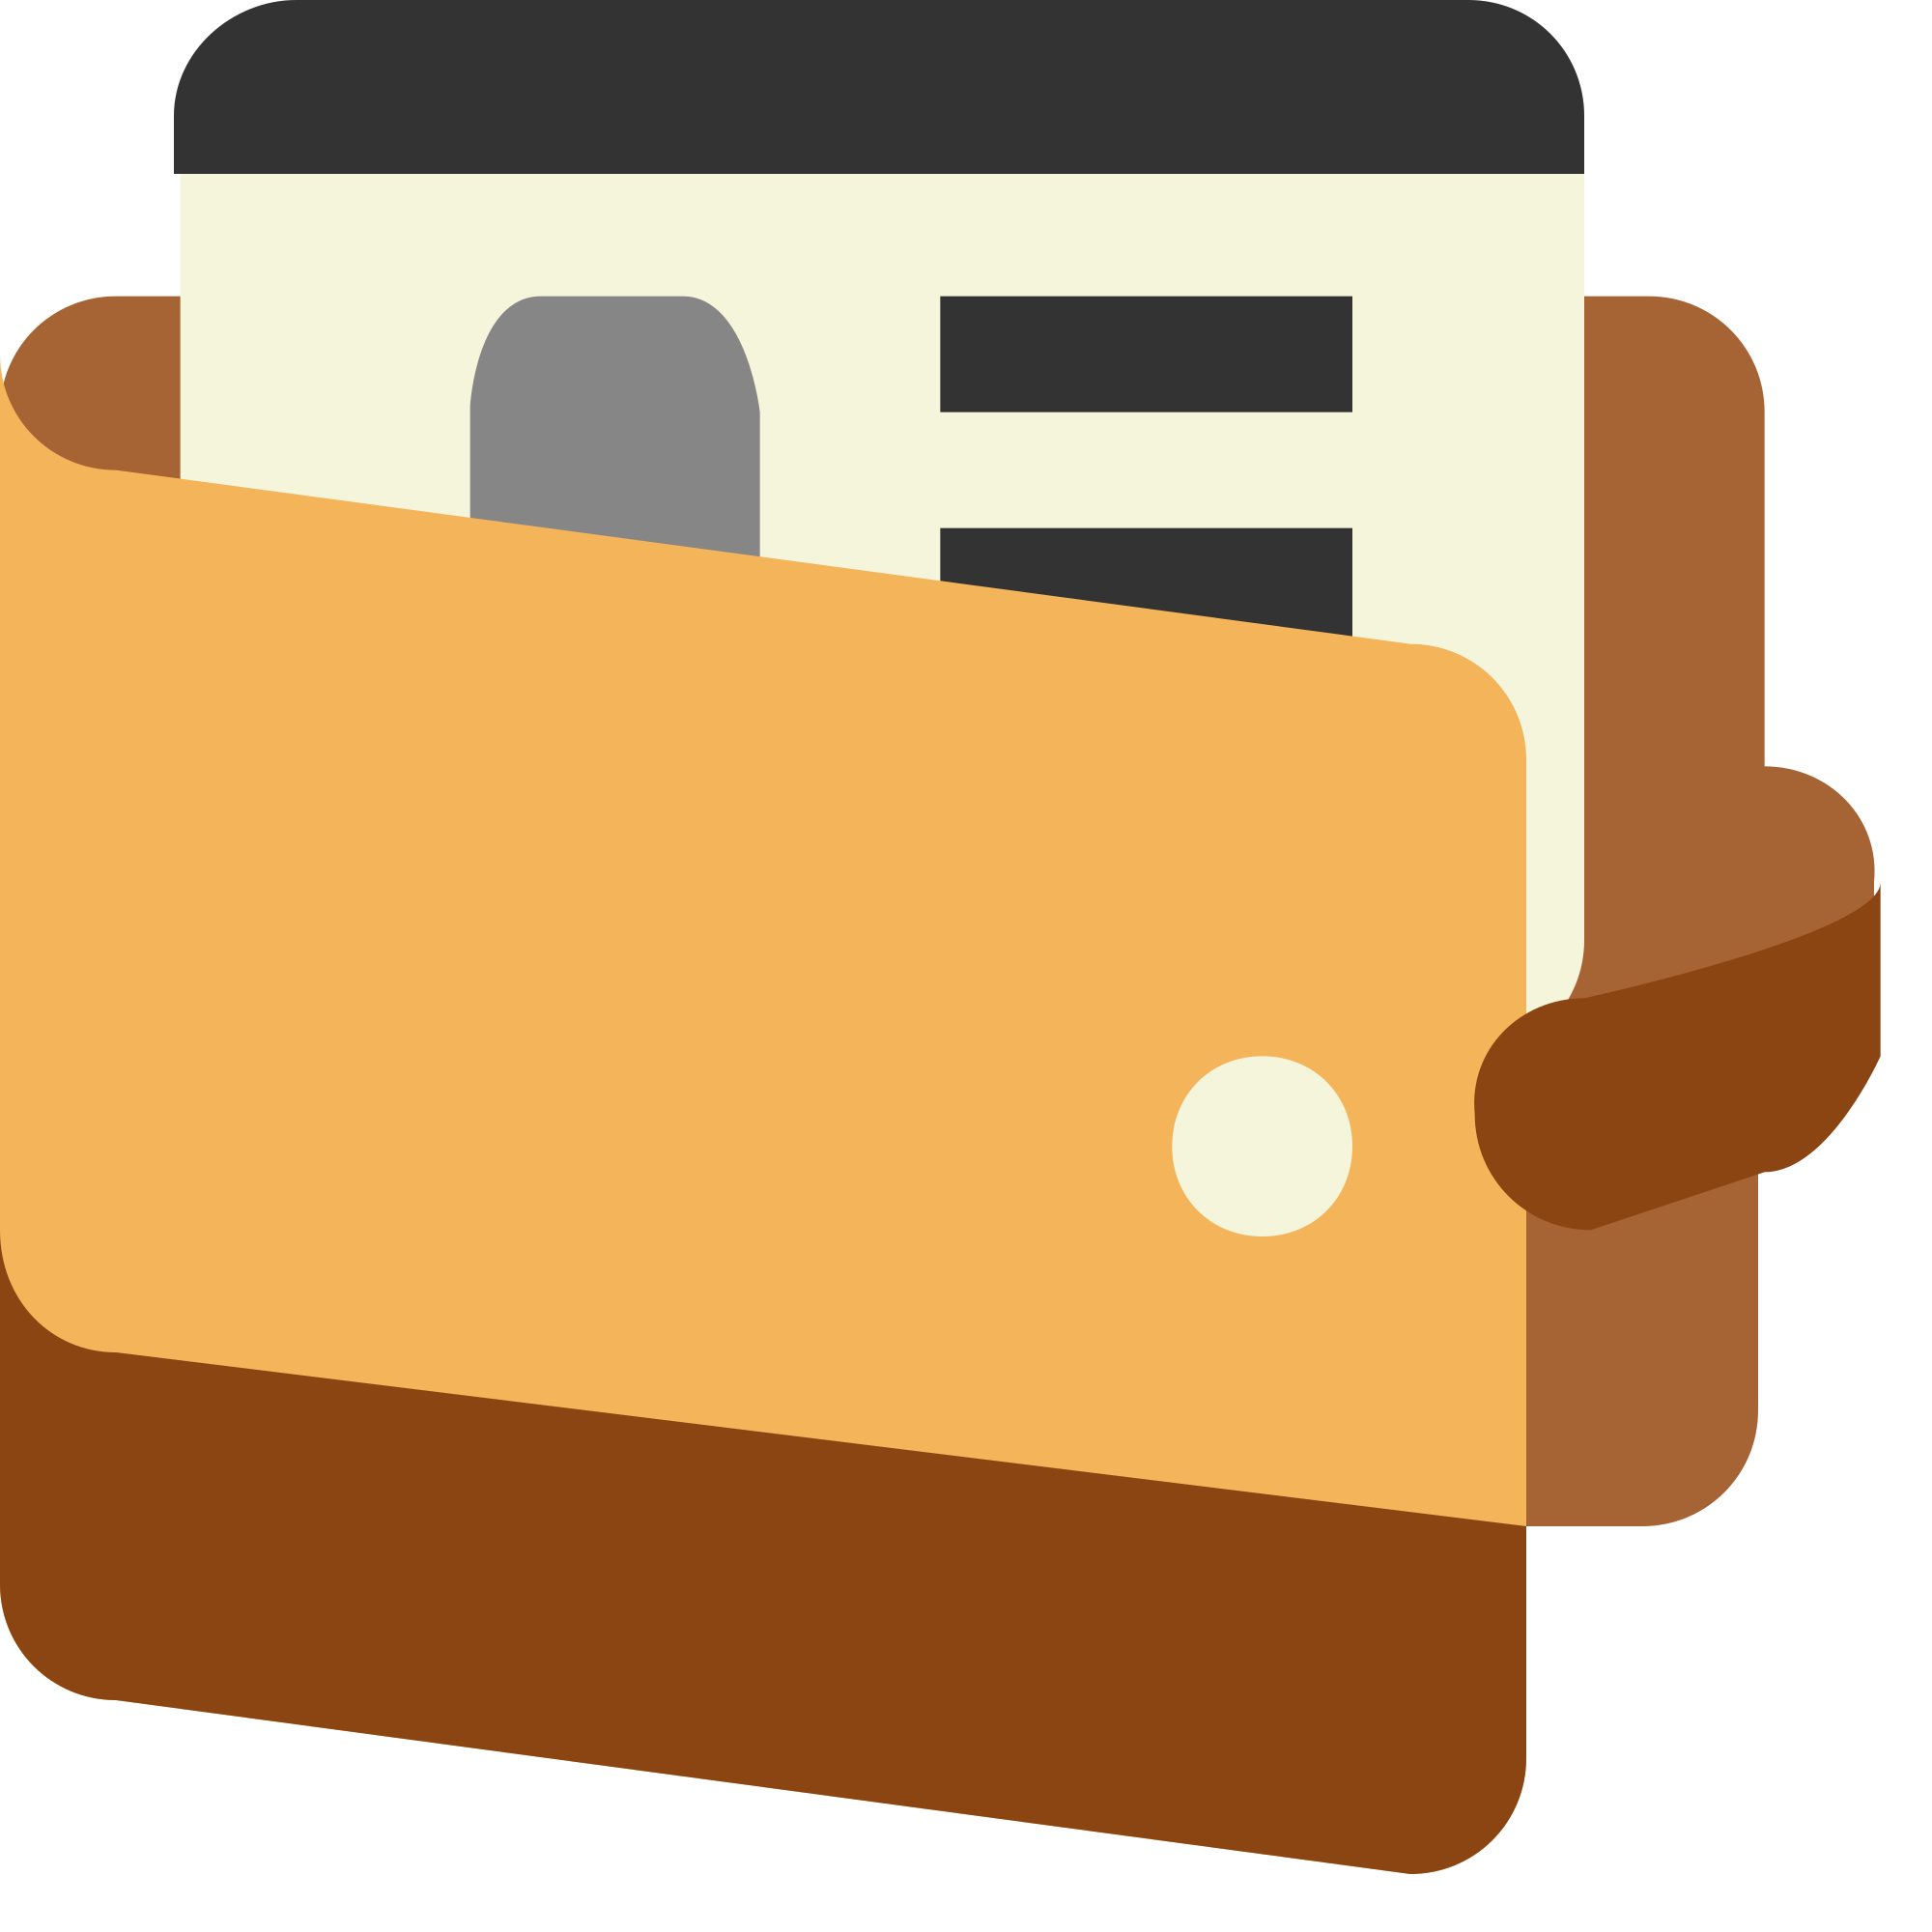 File svg wikimedia commons. Wallet clipart digital